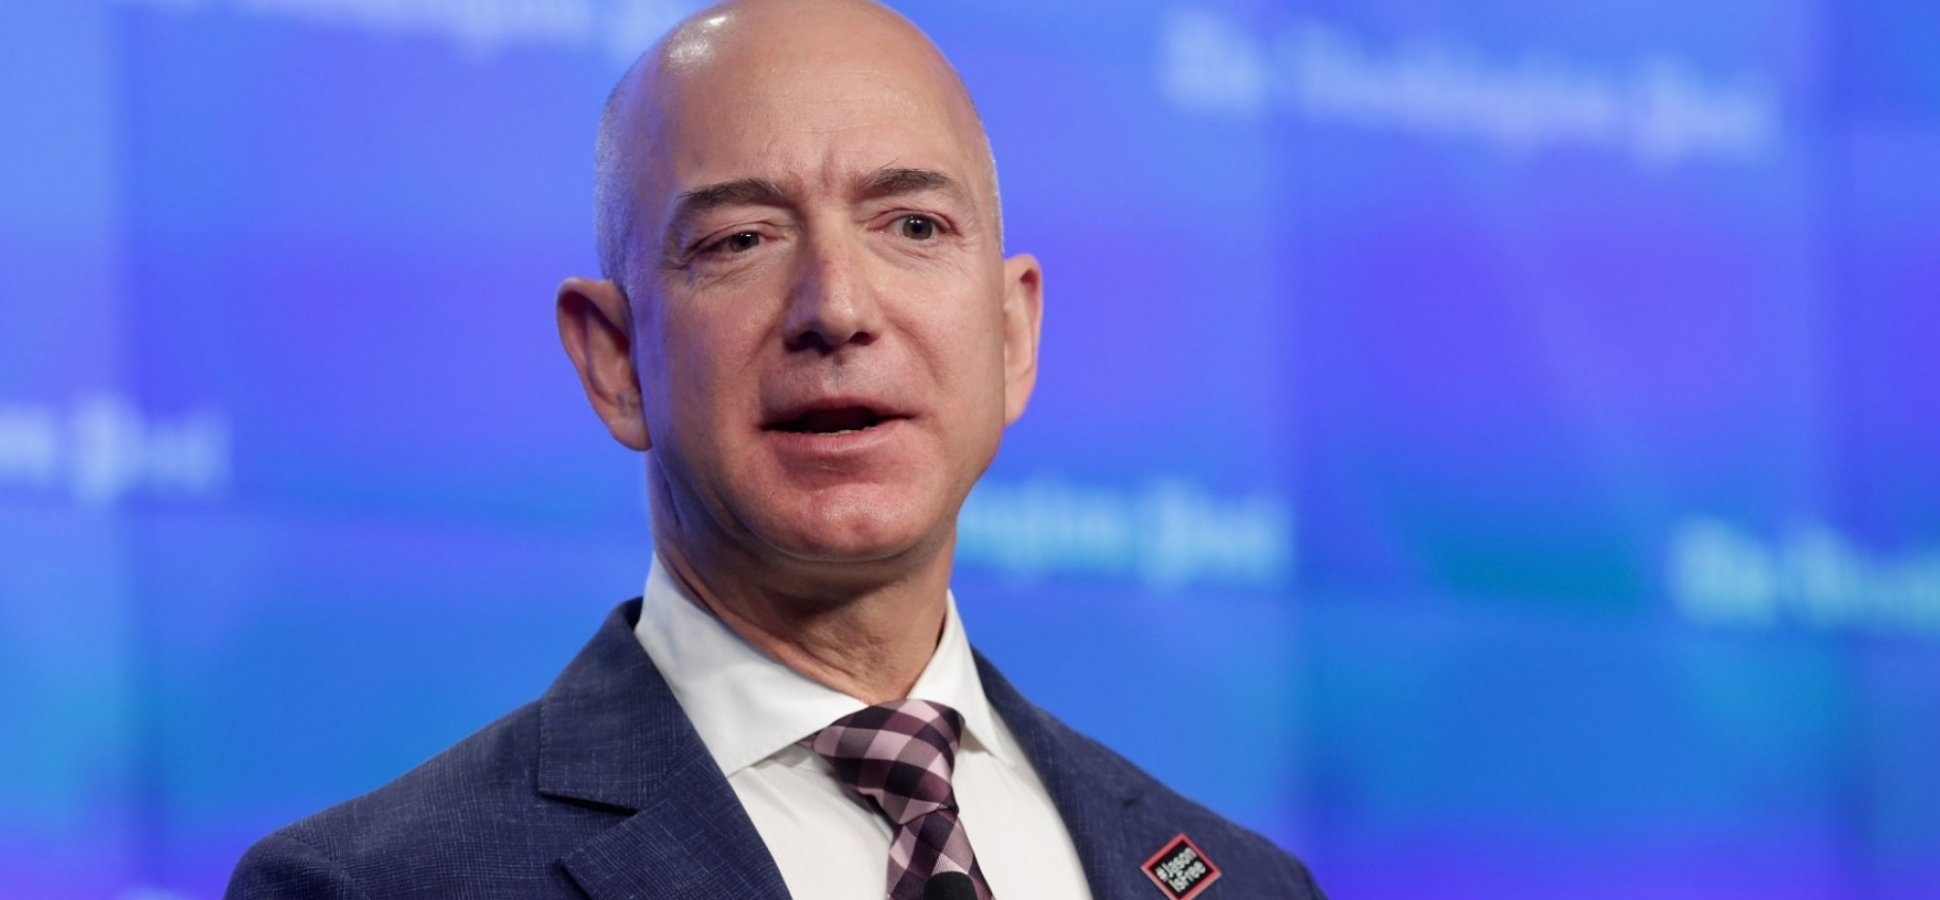 In 21 Simple Words, Jeff Bezos Summed Up the Biggest Mistake Entrepreneurs Make (and Keep Making)